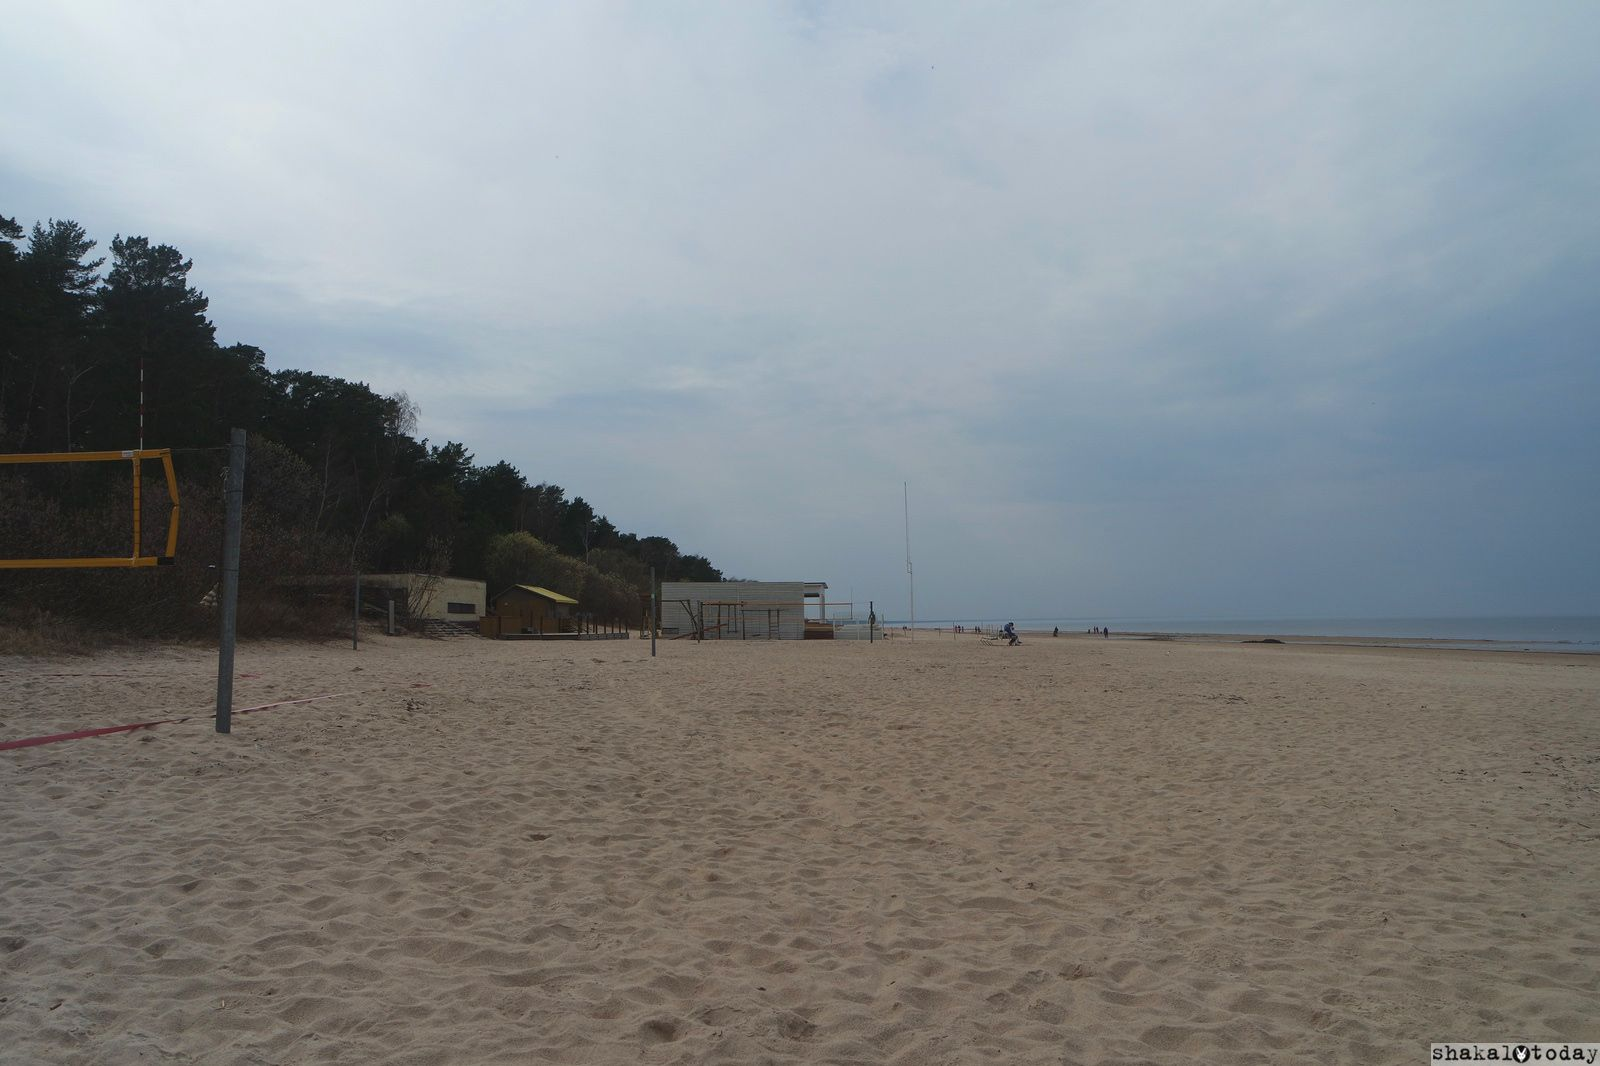 jurmala-shakal-today-0036.jpg